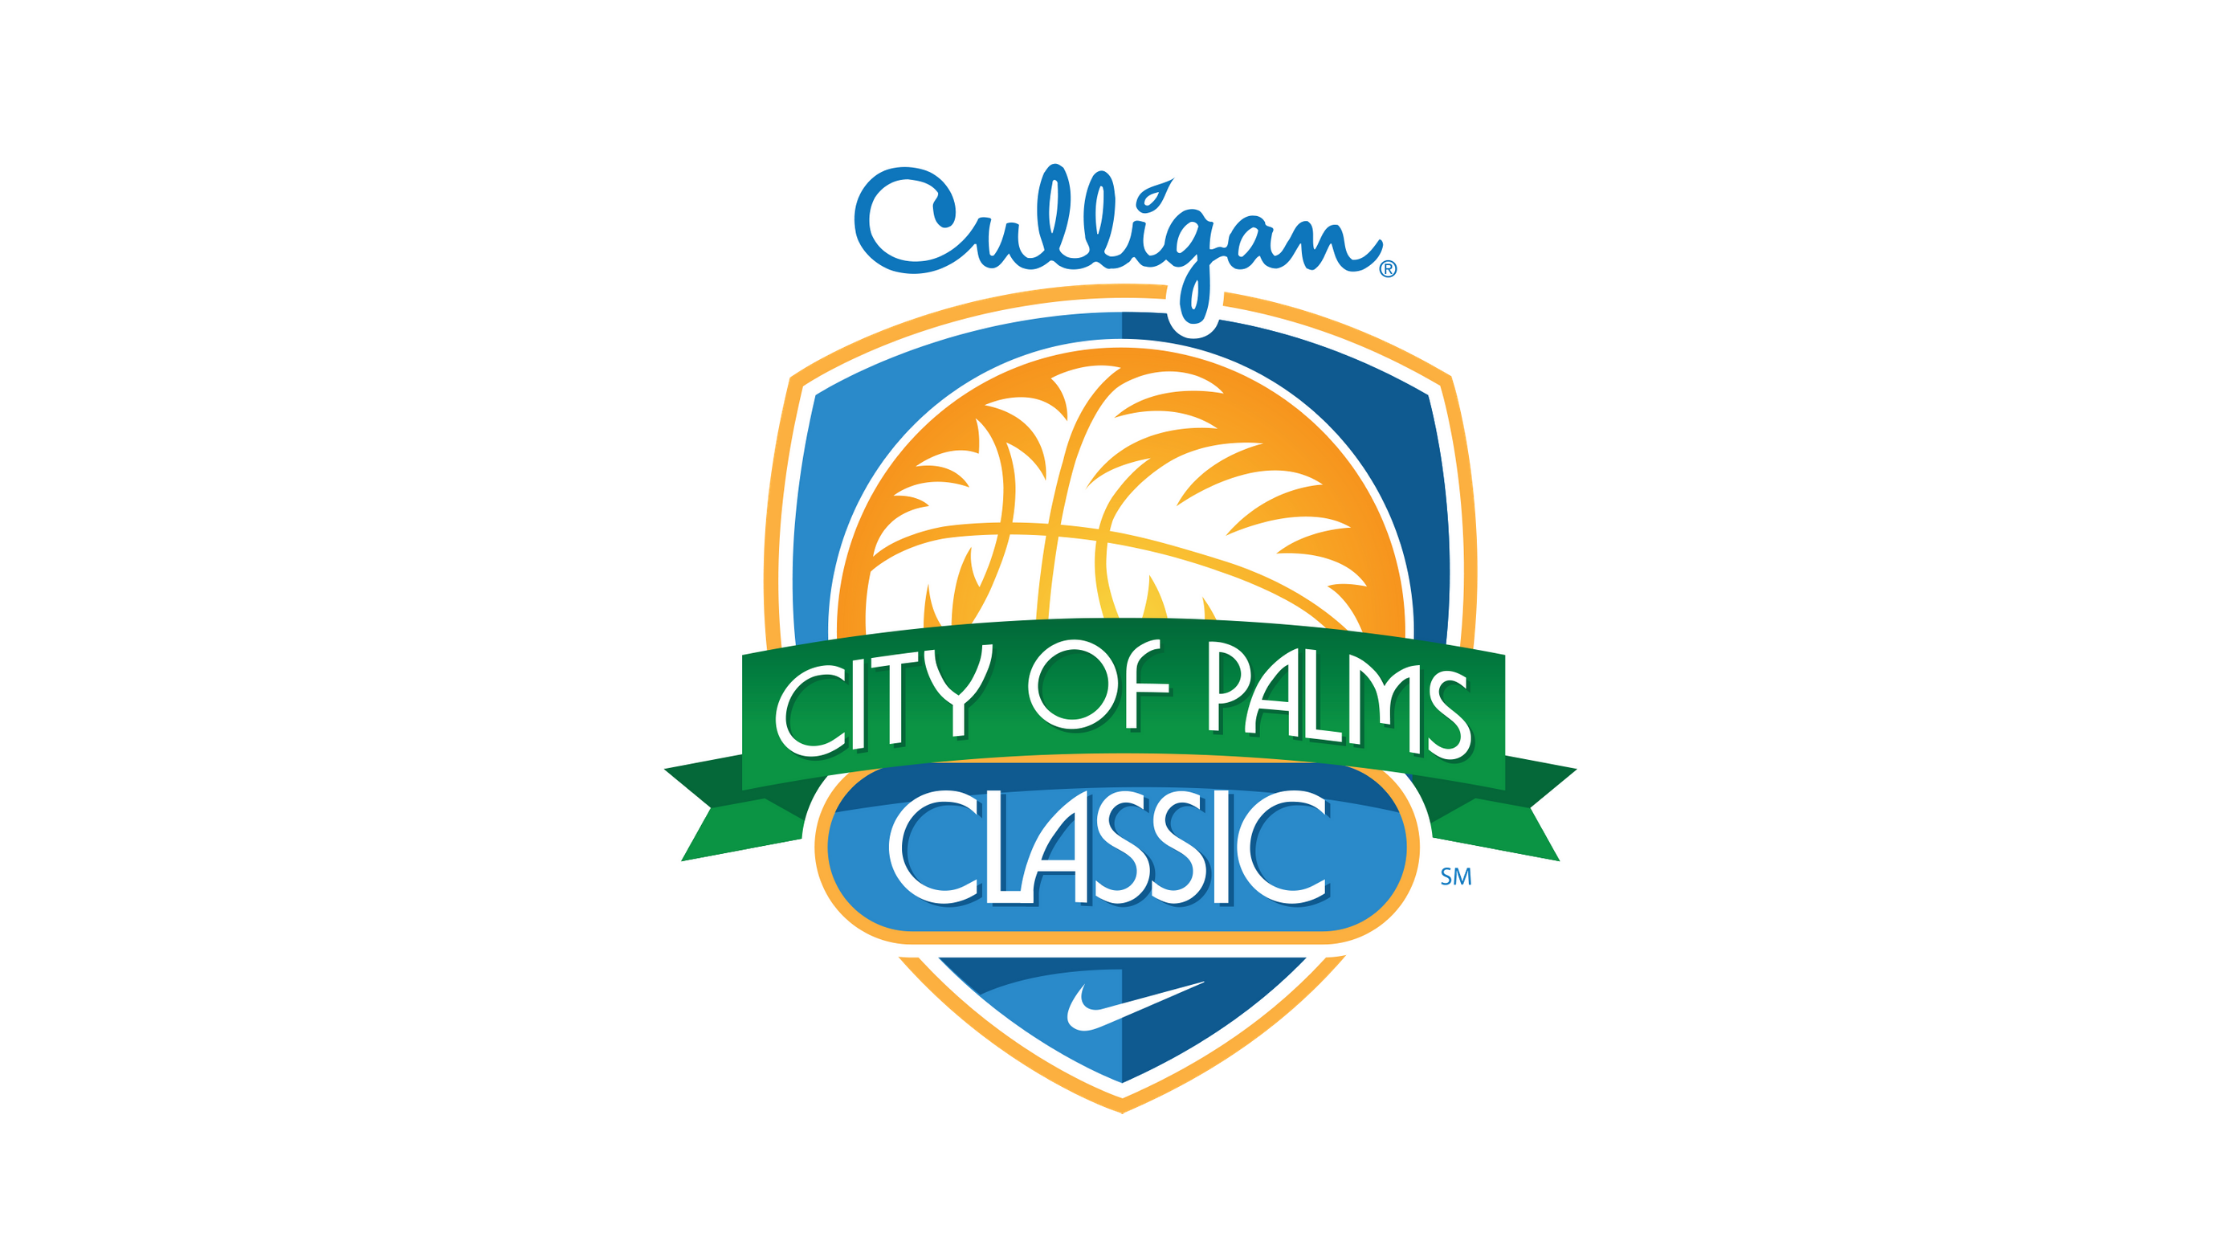 Officials decide to cancel 2020 Culligan City of Palms Classic